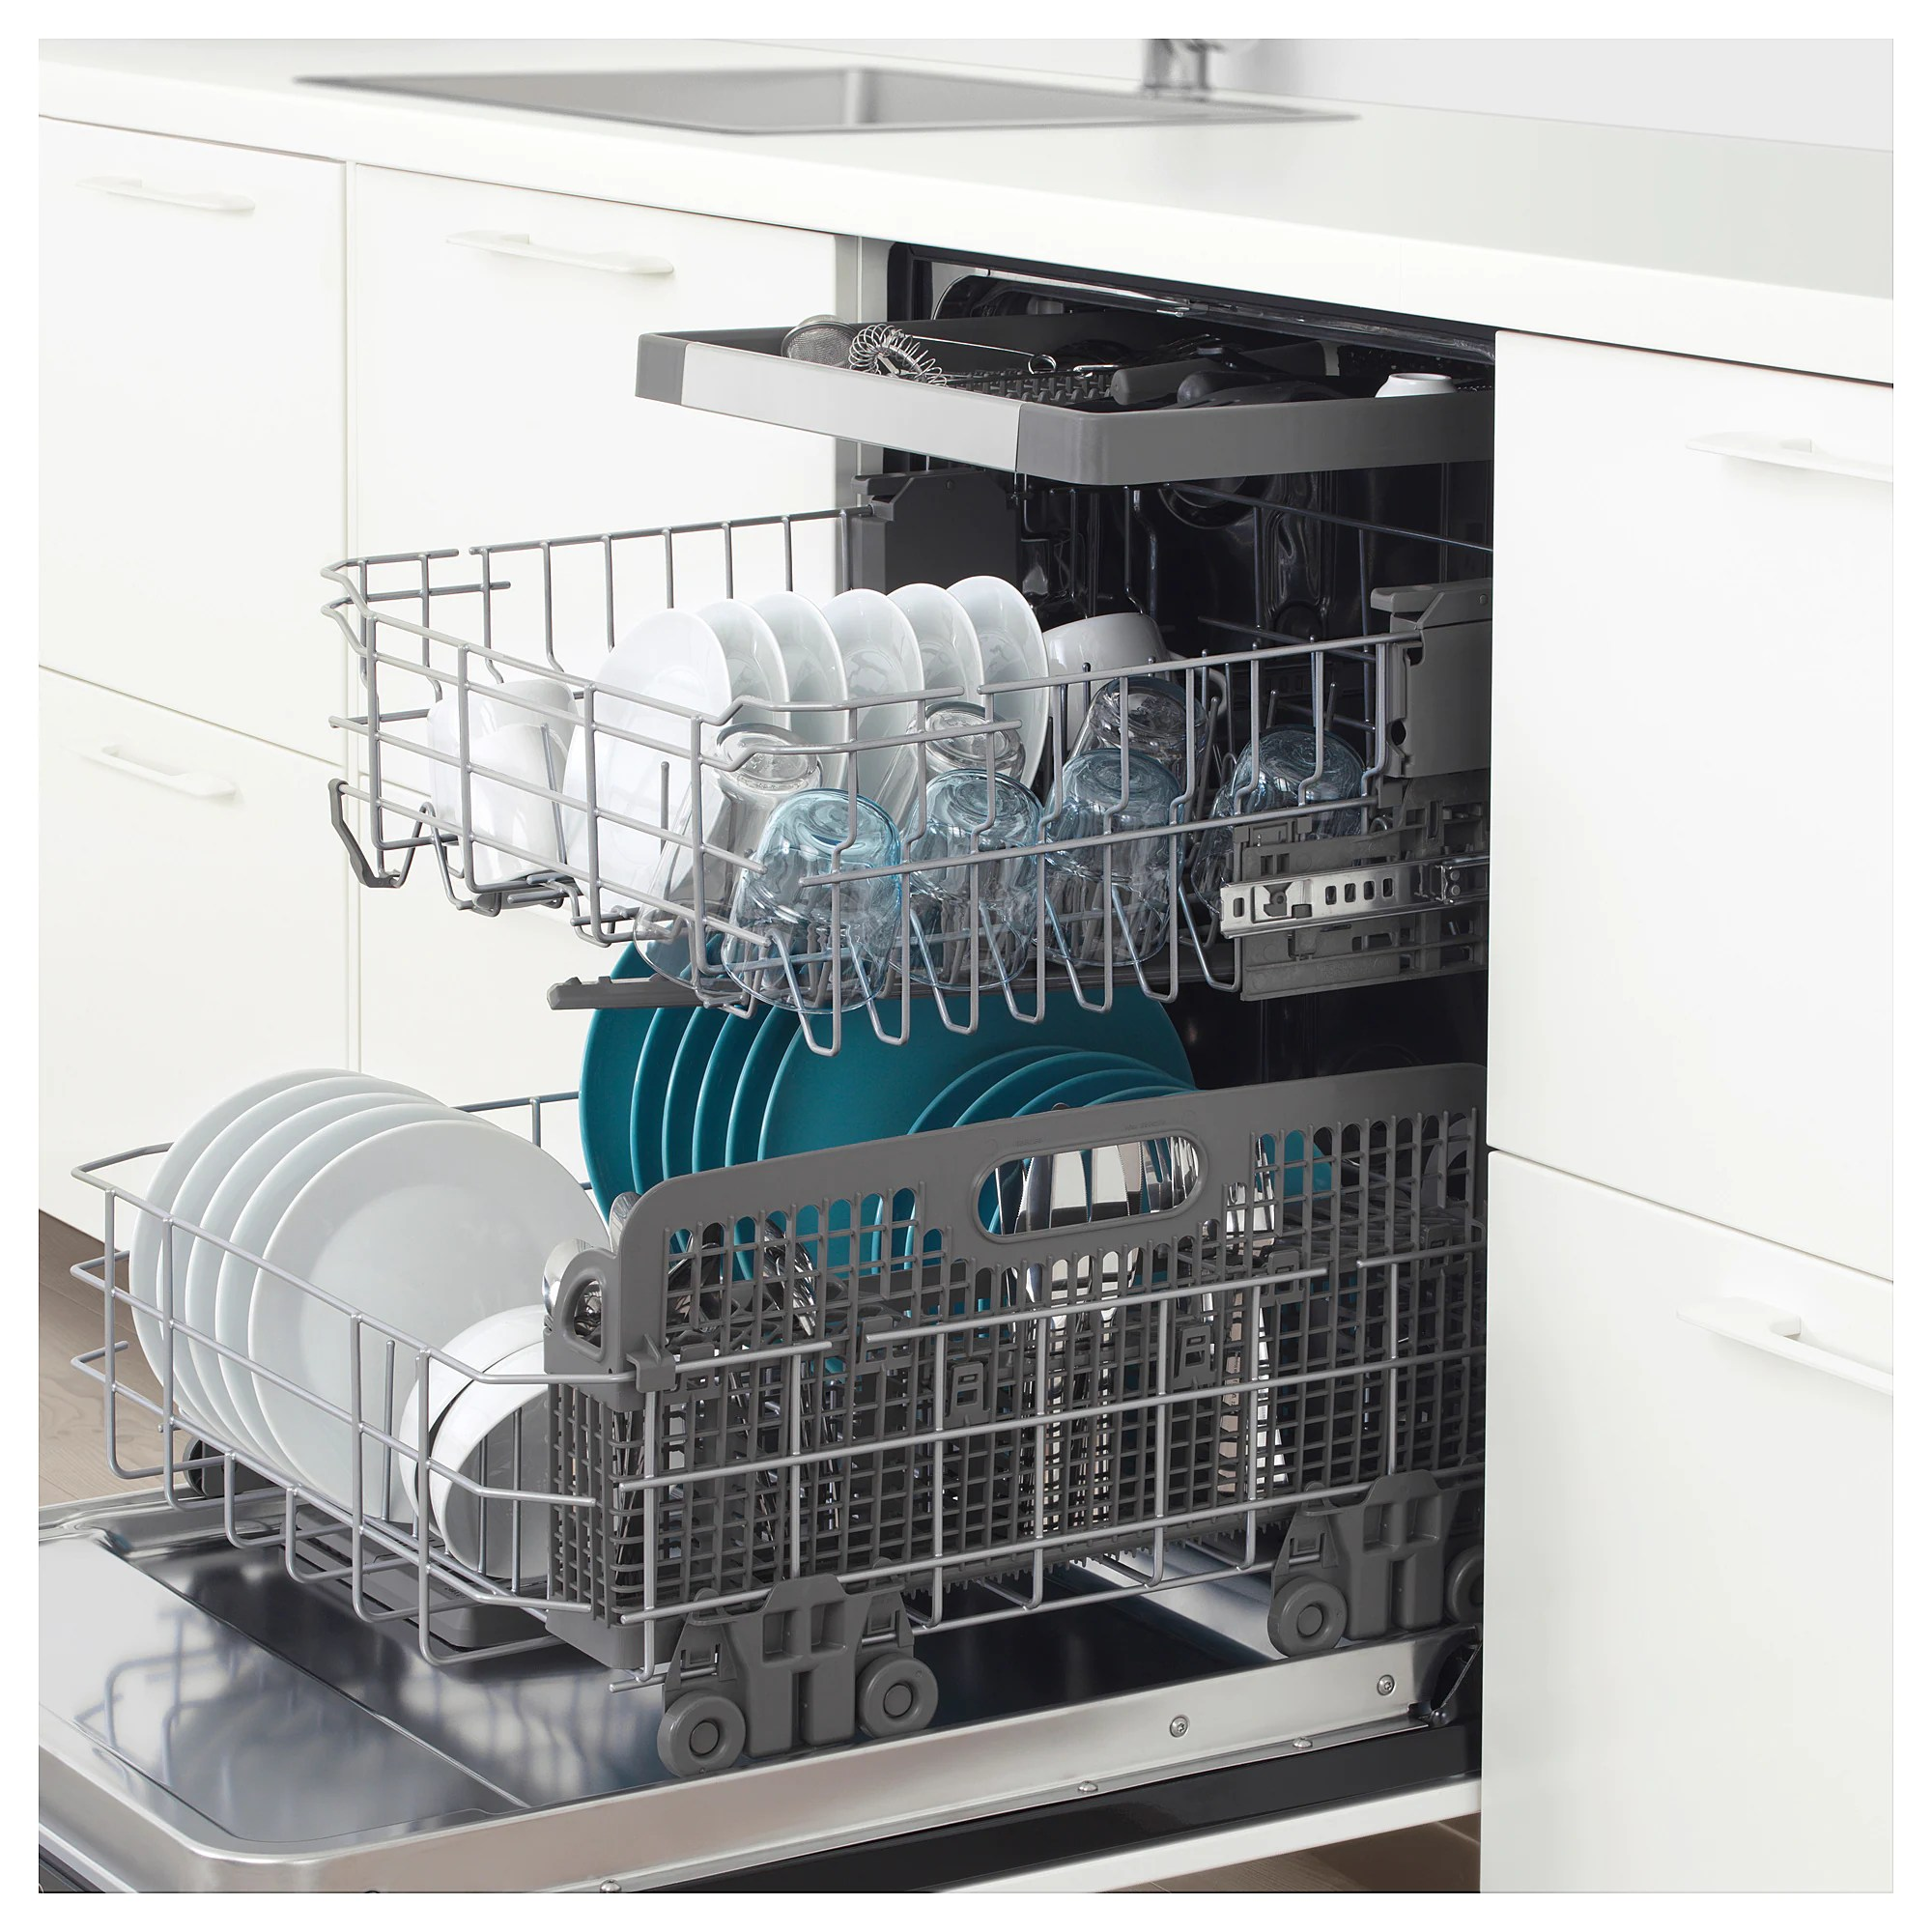 Ikea San Diego Hours Vaskad Built In Dishwasher